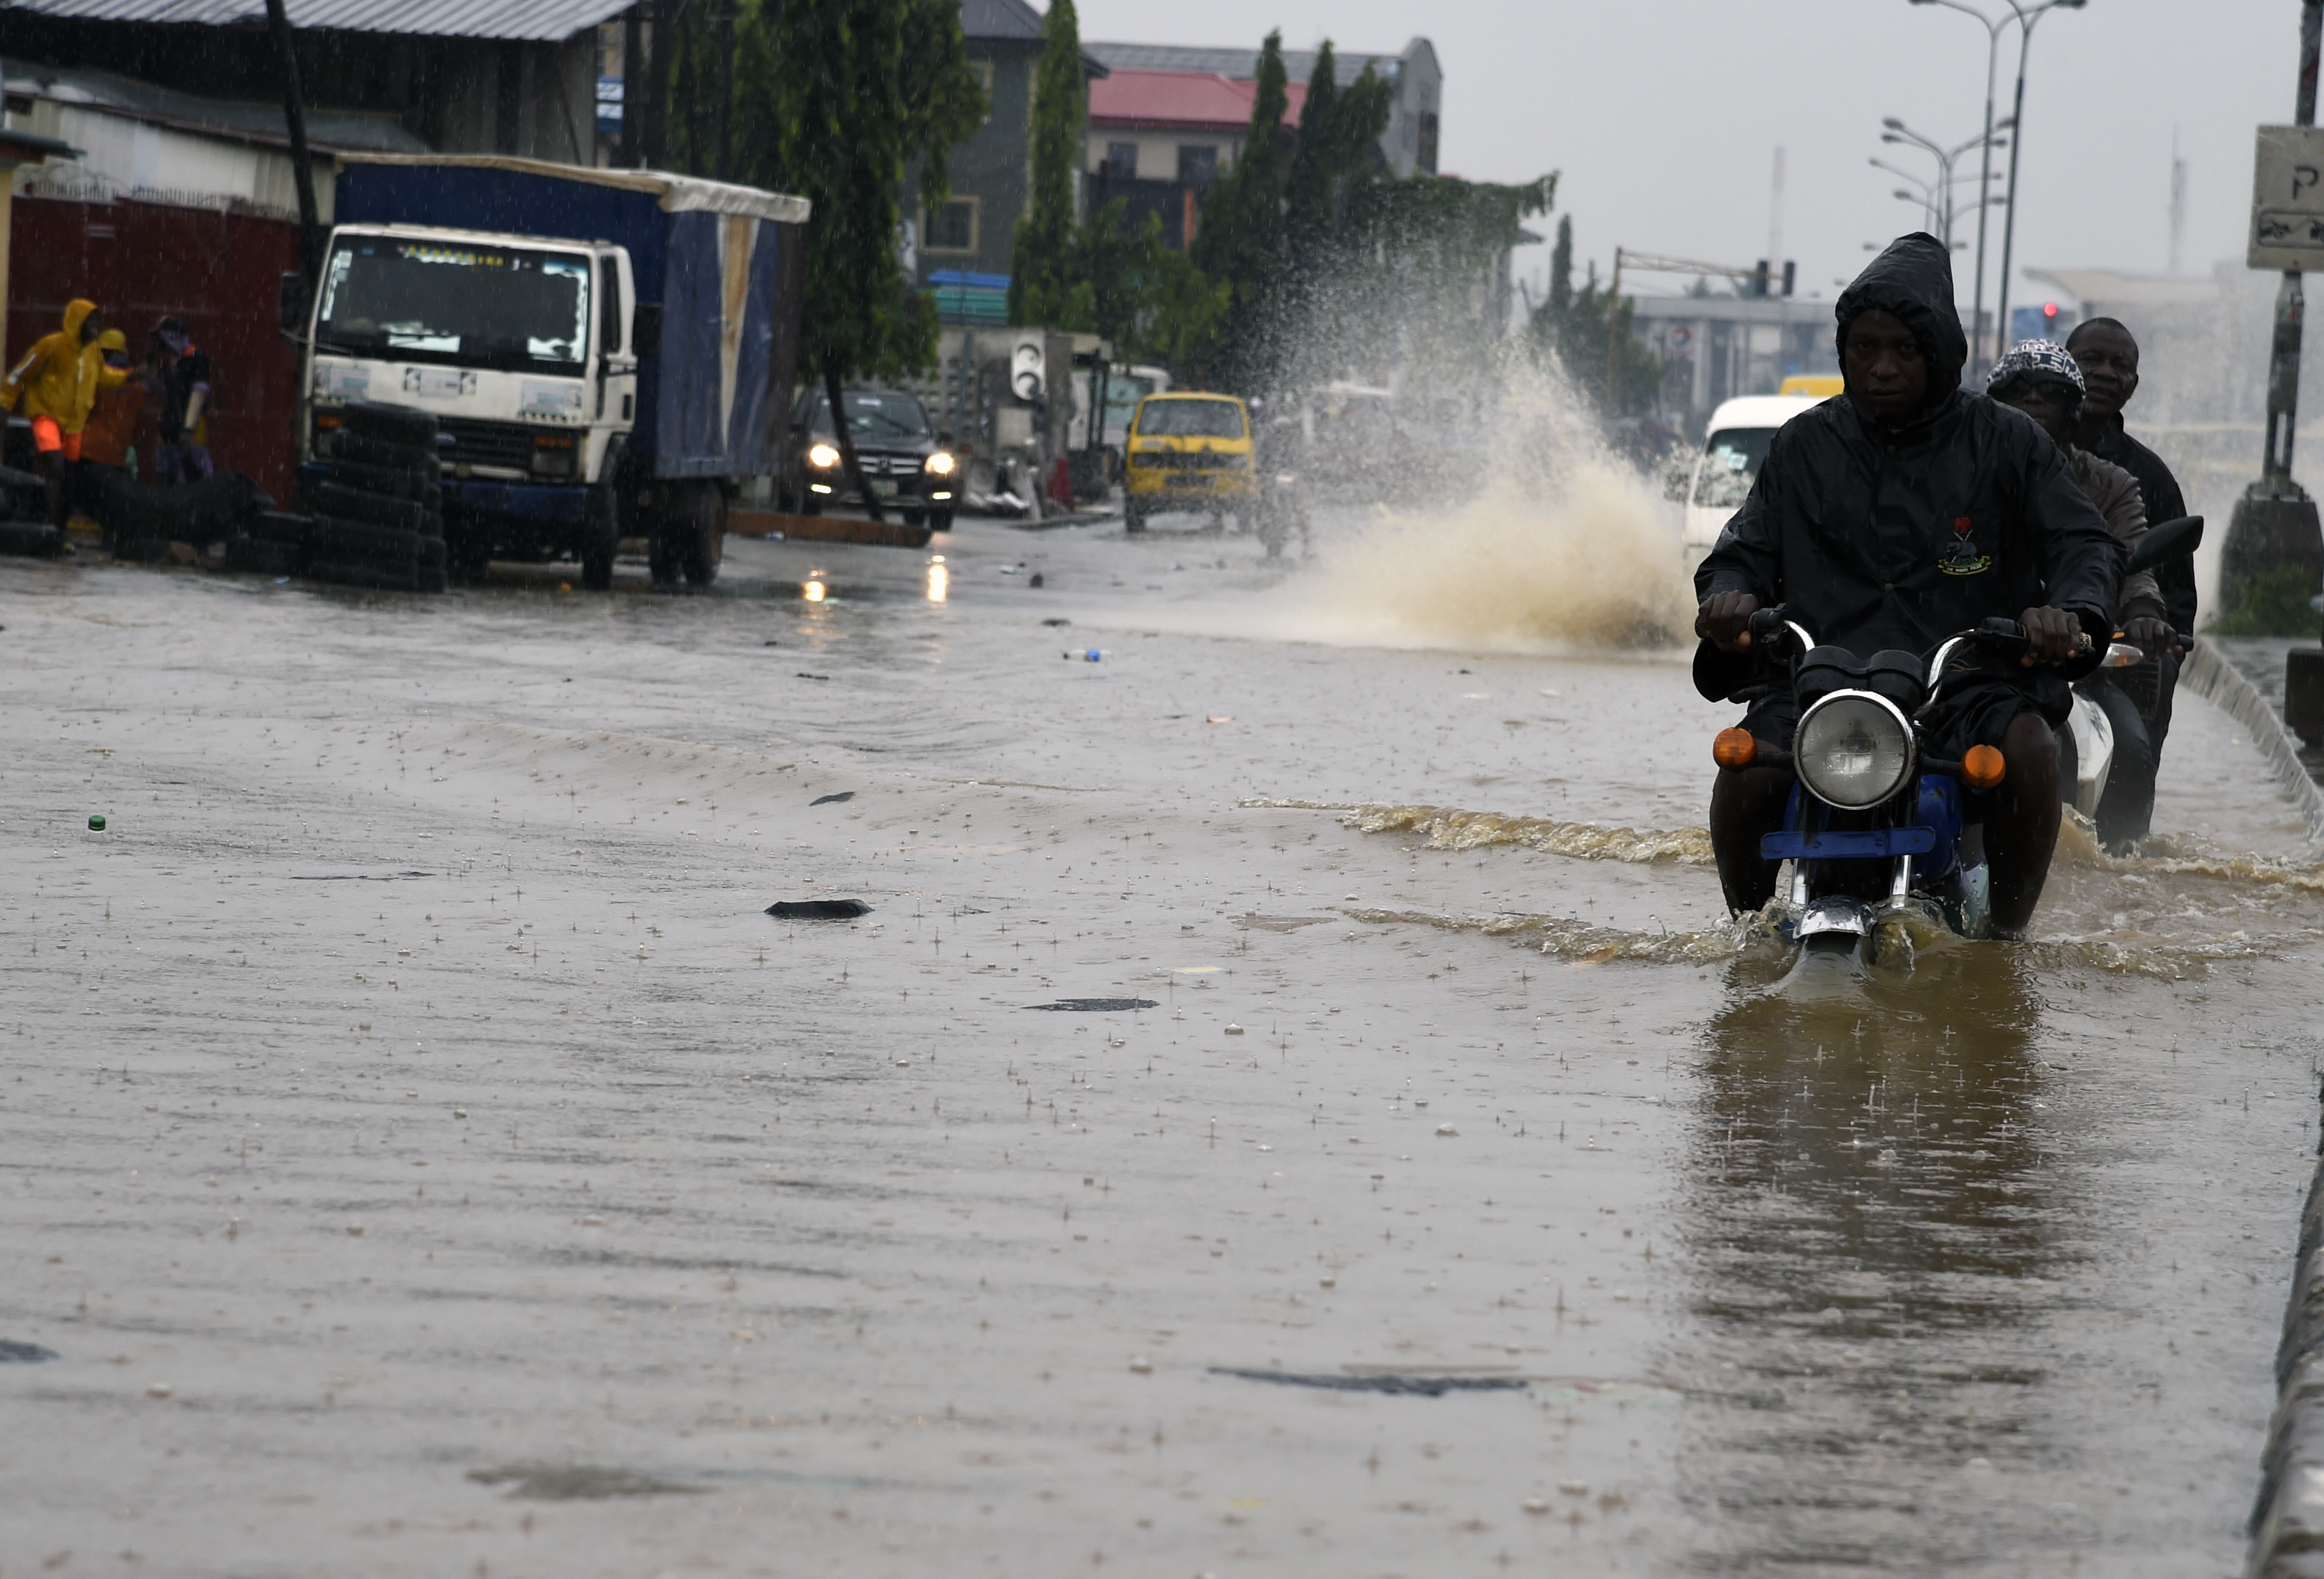 Lagos Is Getting Less Rain, but More Heavy Storms. What It Can Do to Prepare